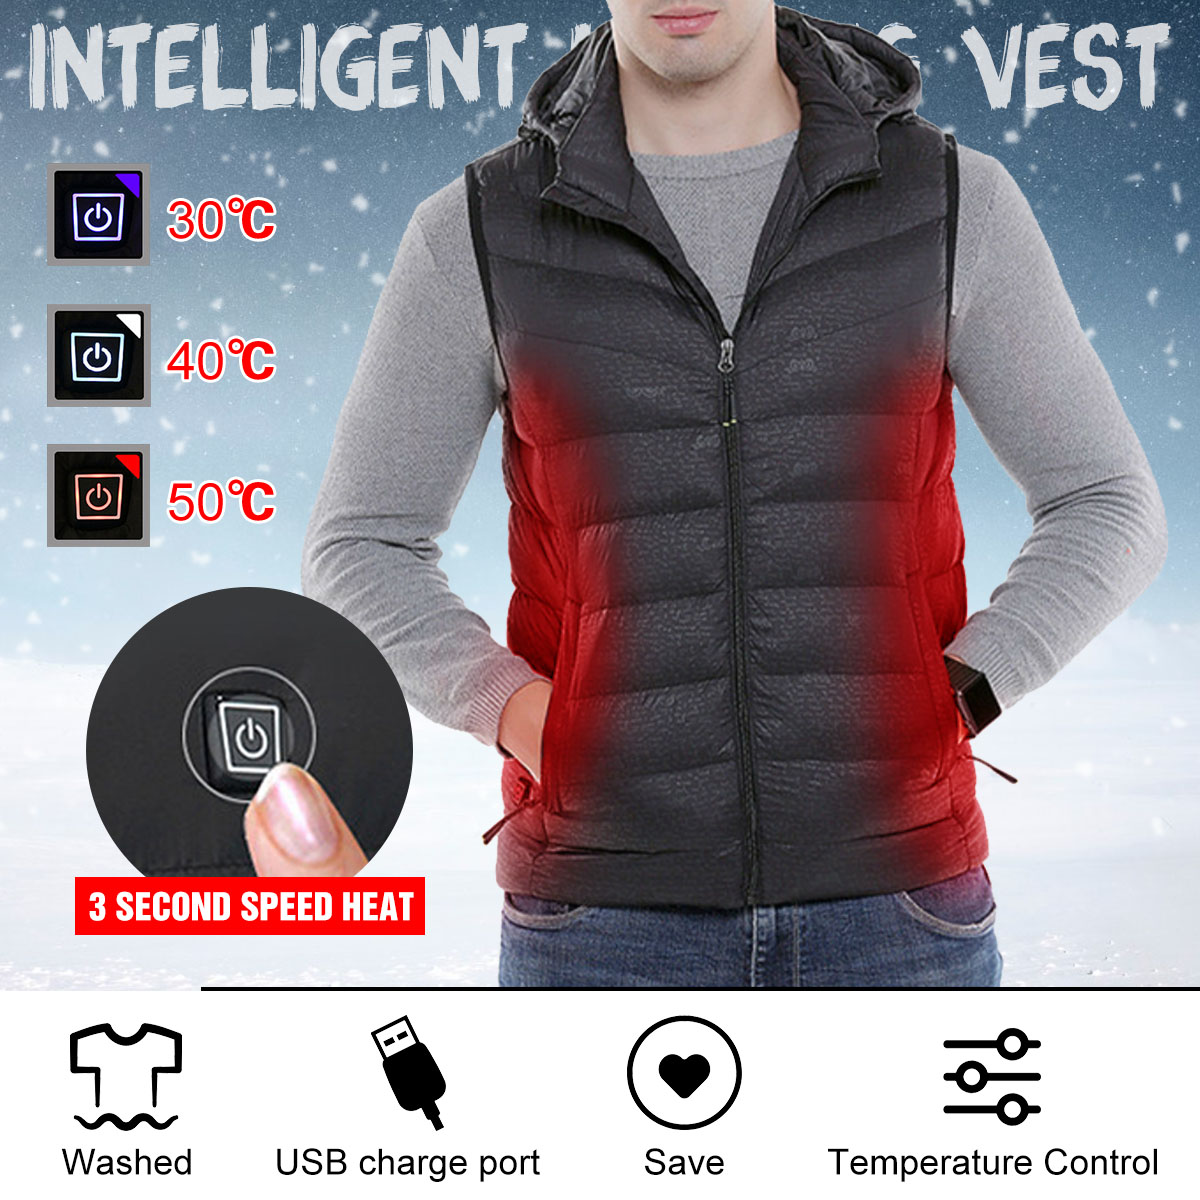 Mens Winter Heated USB Charge 3modes Hooded Work Jacket Coats Vest Adjustable Temperature Control Safety Clothing mens winter heated usb charge hooded work jacket coats vest adjustable temperature control safety clothing